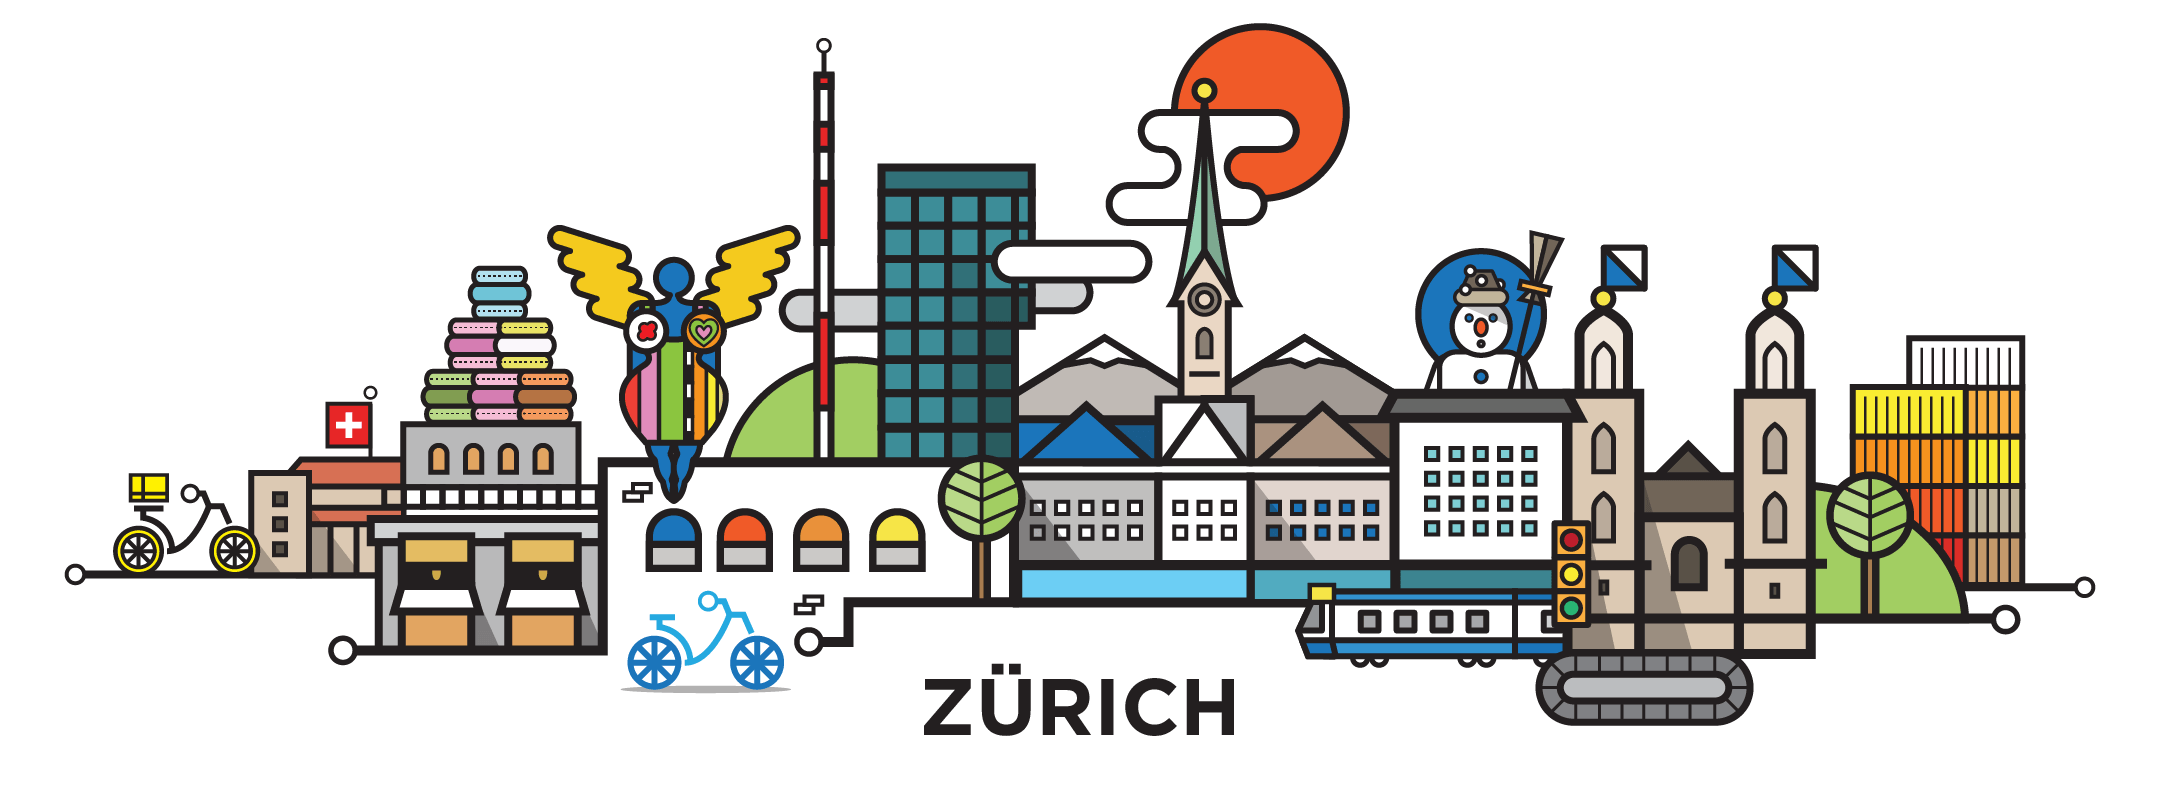 zurich-cityline-illustration-by-loogart